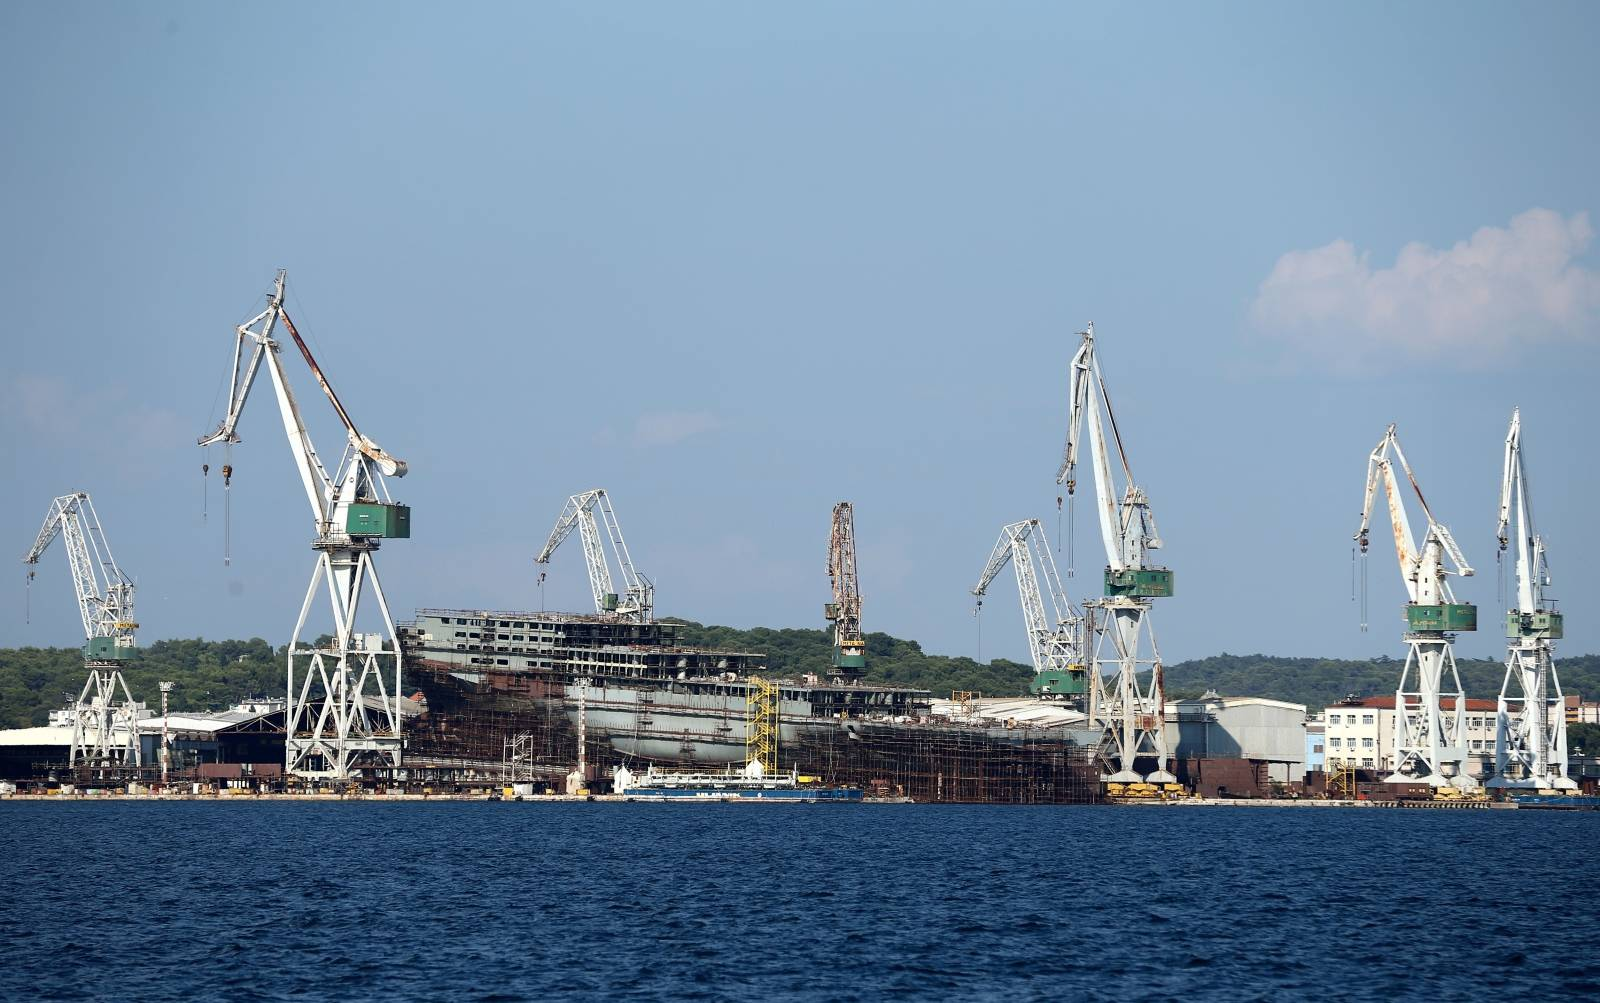 FILE PHOTO: Part of Uljanik shipyard is seen in Pula